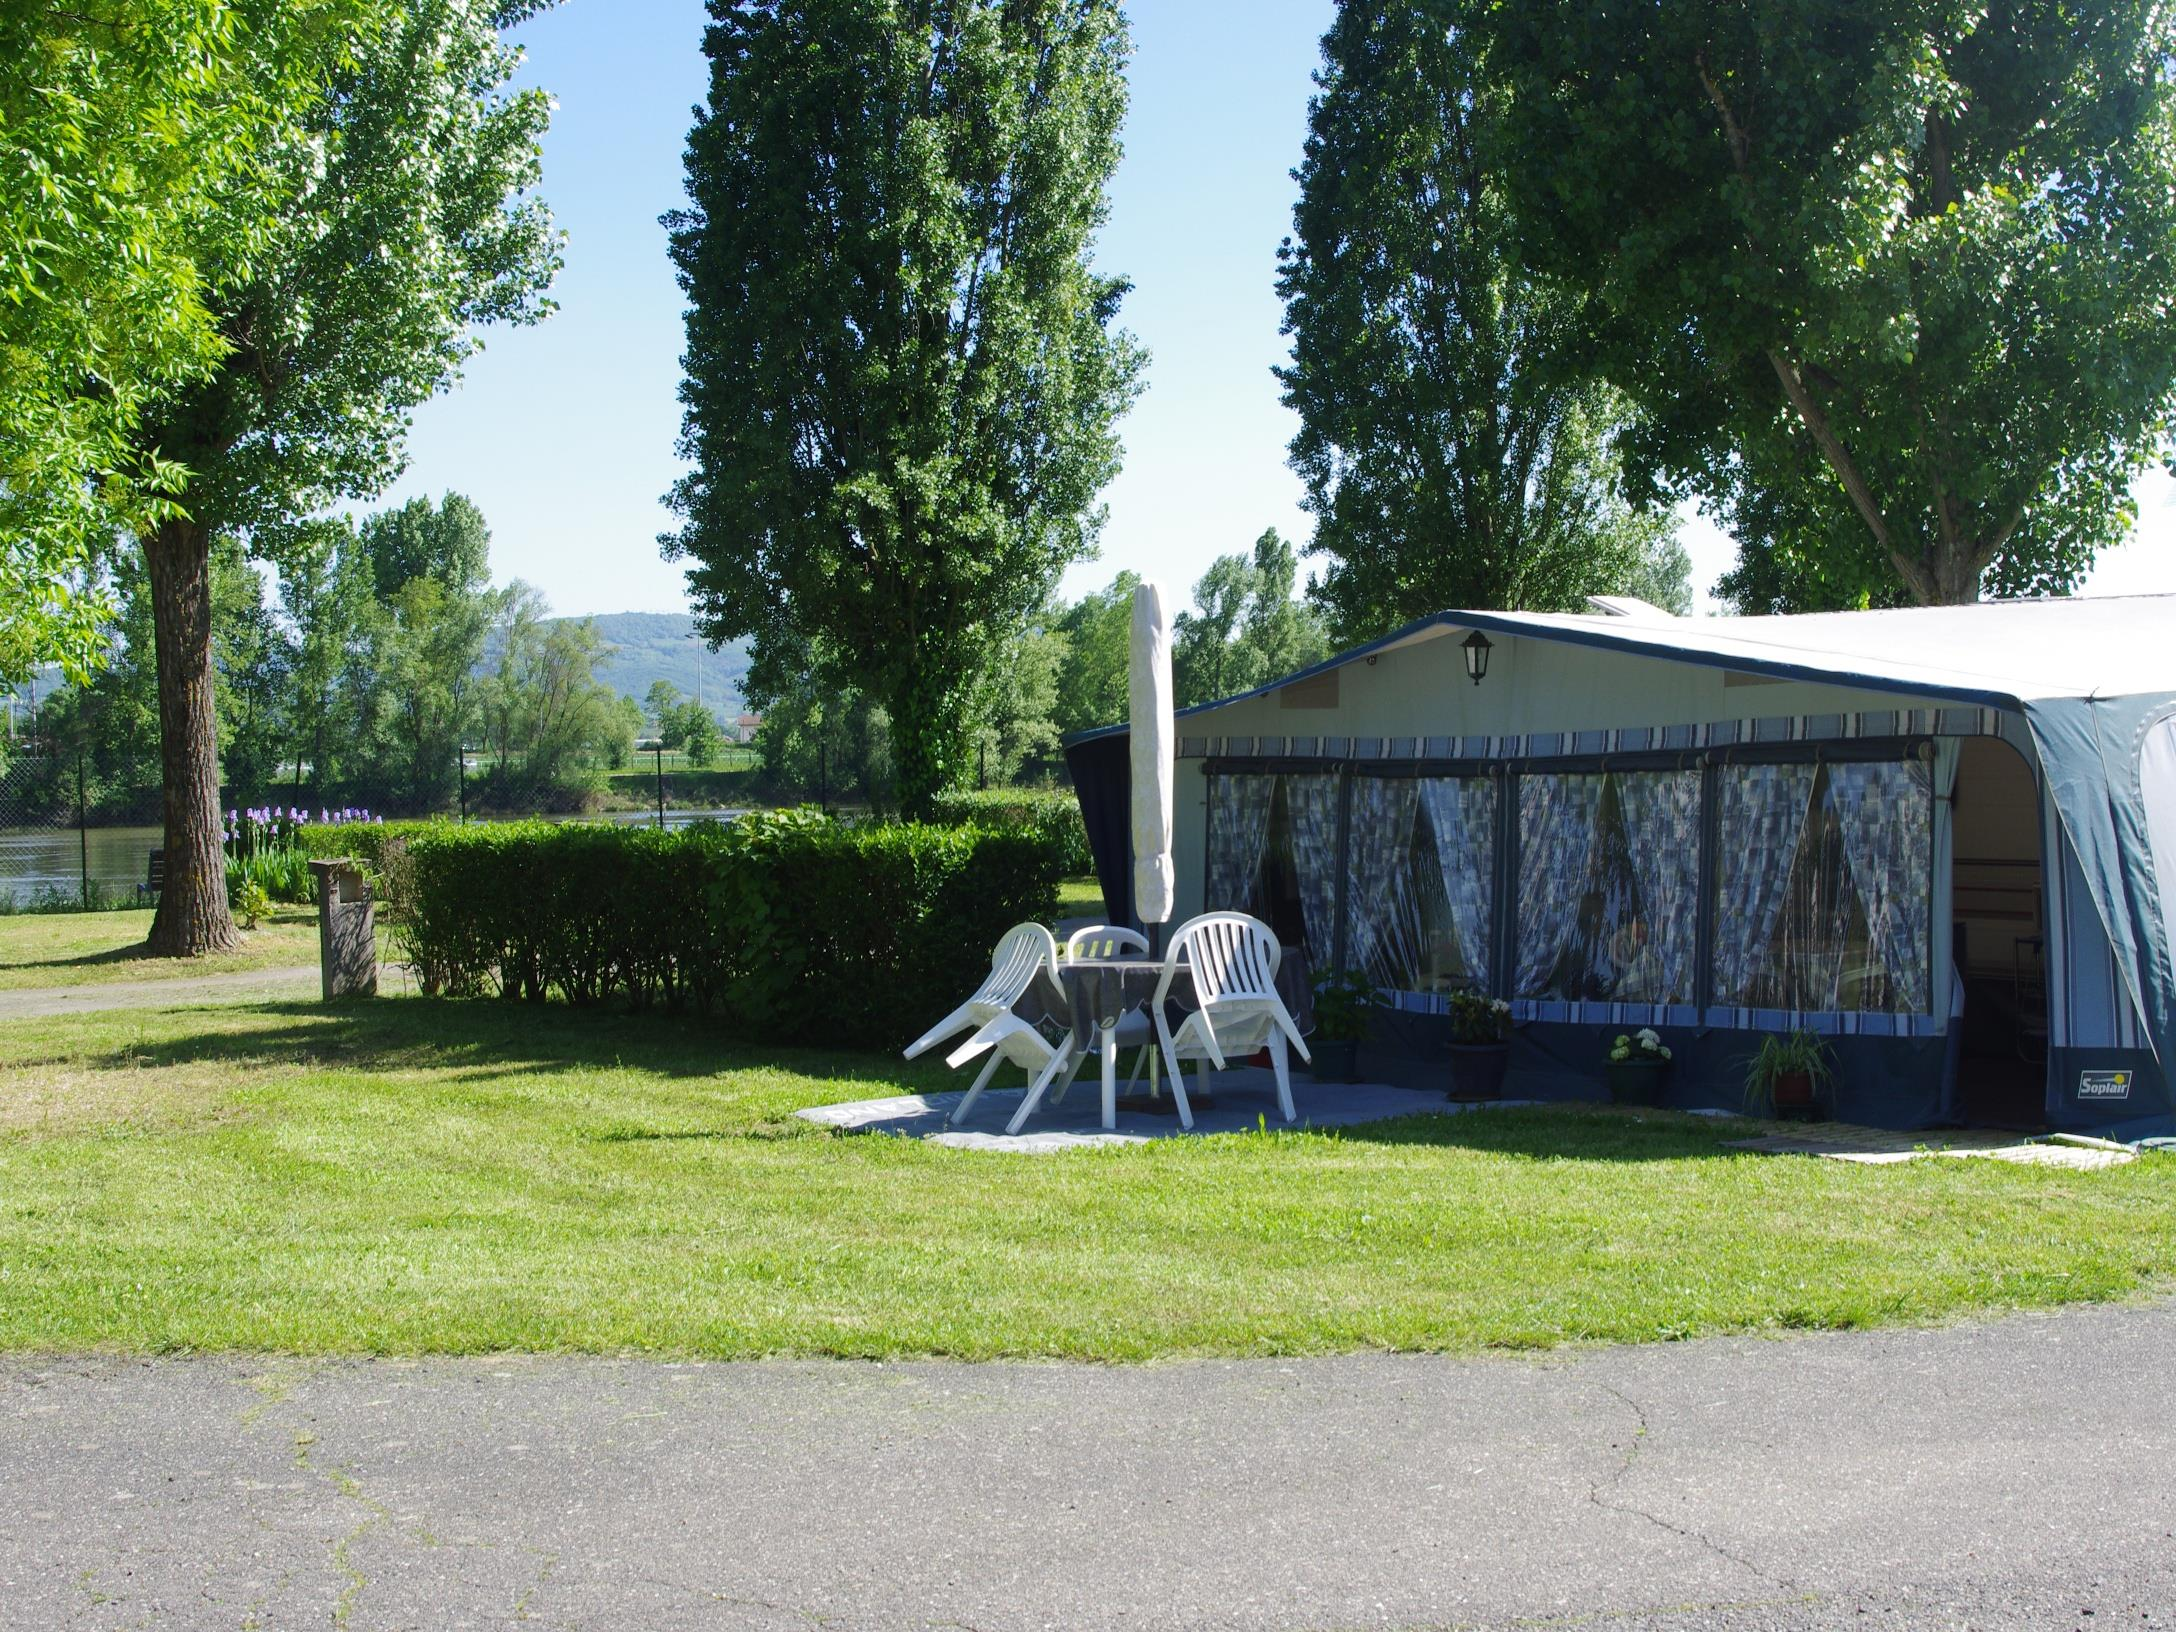 Pitch - Pitch Confort Package - Car, Tent, Caravan Or Camping-Car With Electricity - Camping Kanopée Village